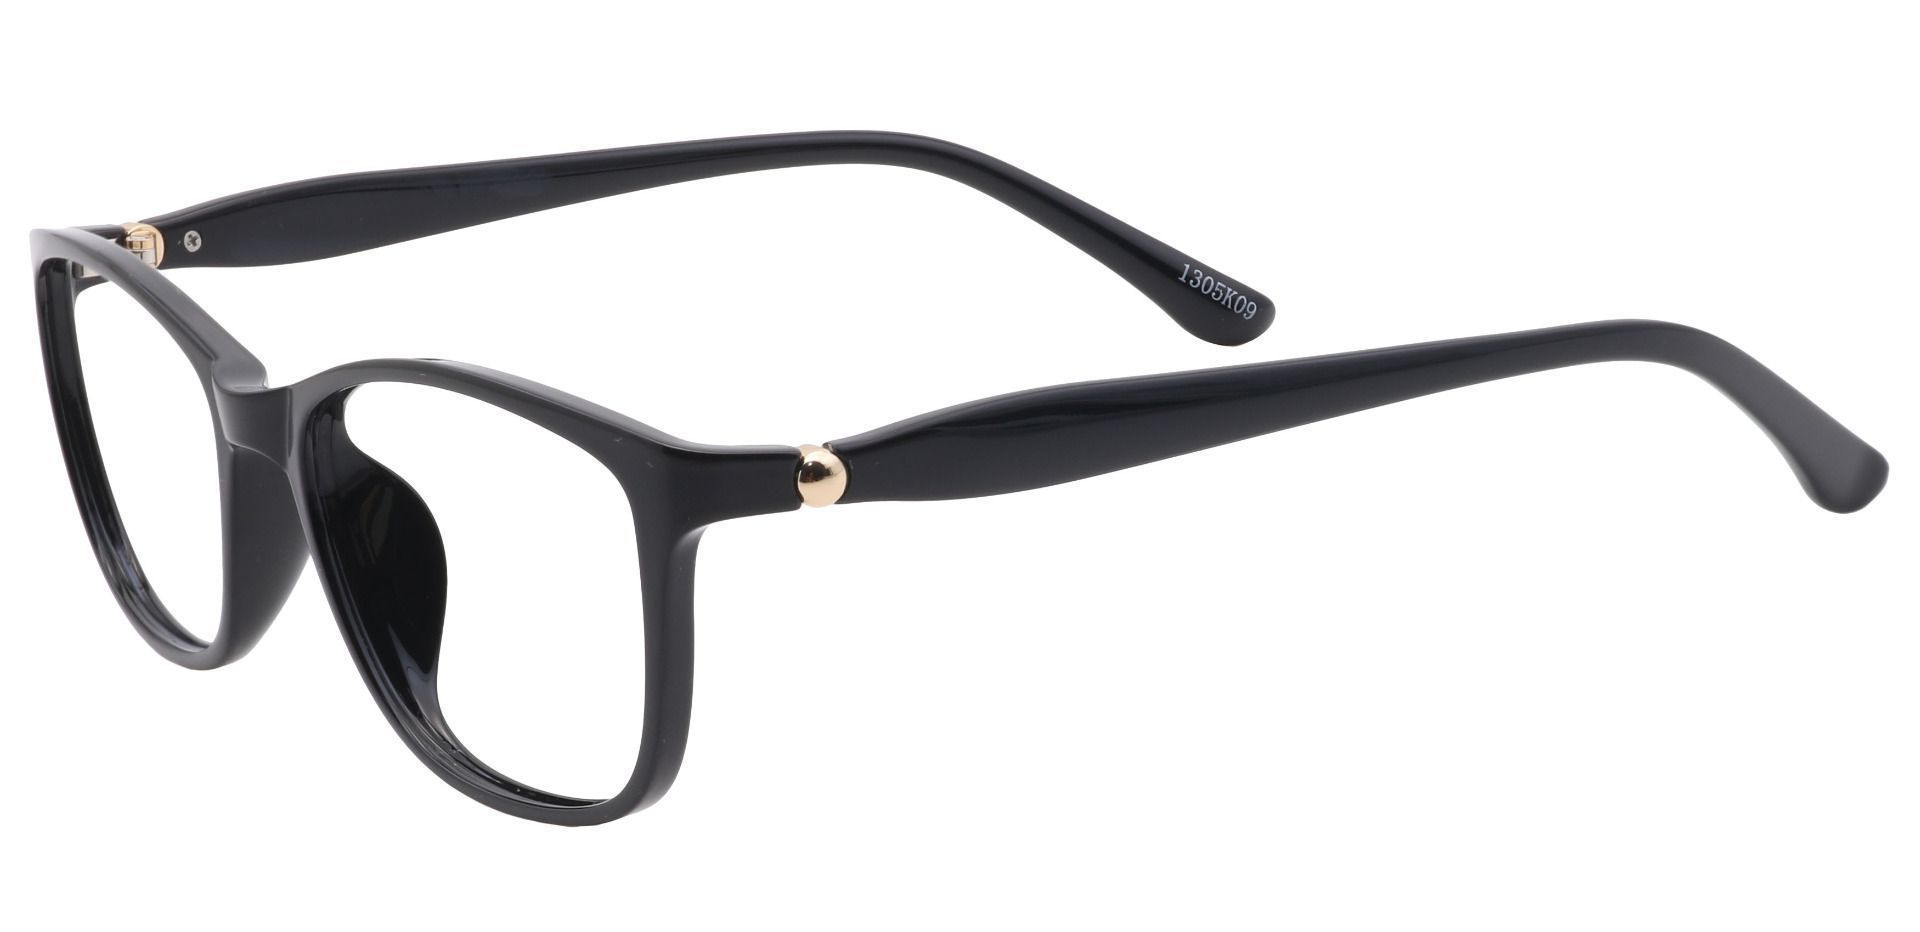 Camden Oval Prescription Glasses - Black